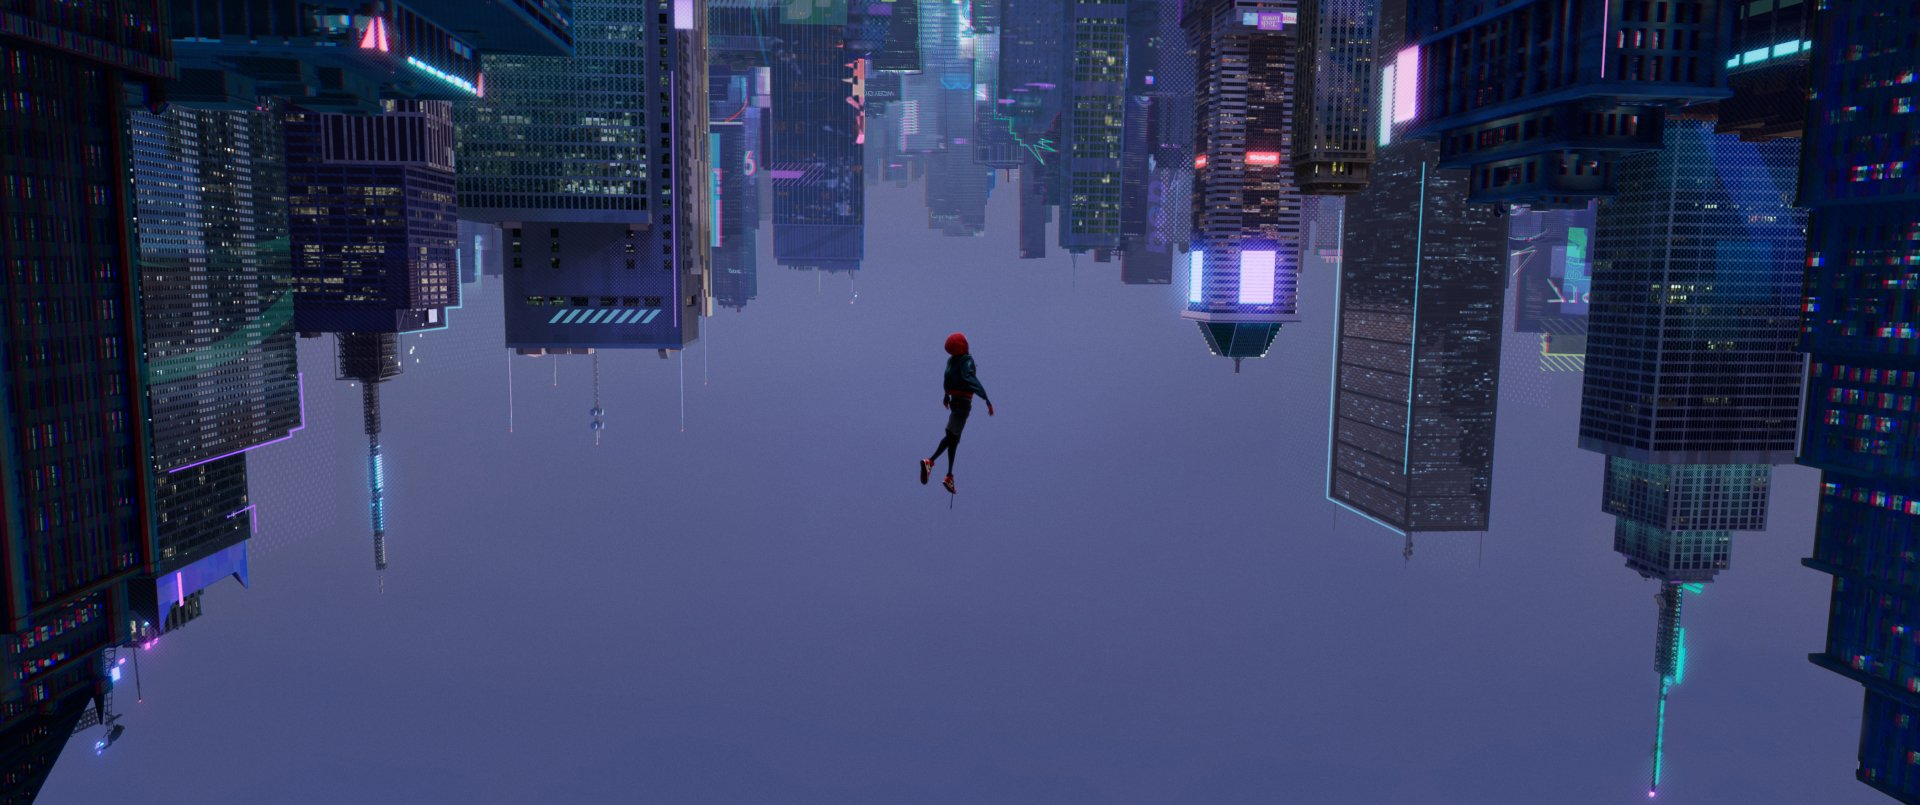 252 Miles Morales Hd Wallpapers Background Images Wallpaper Abyss